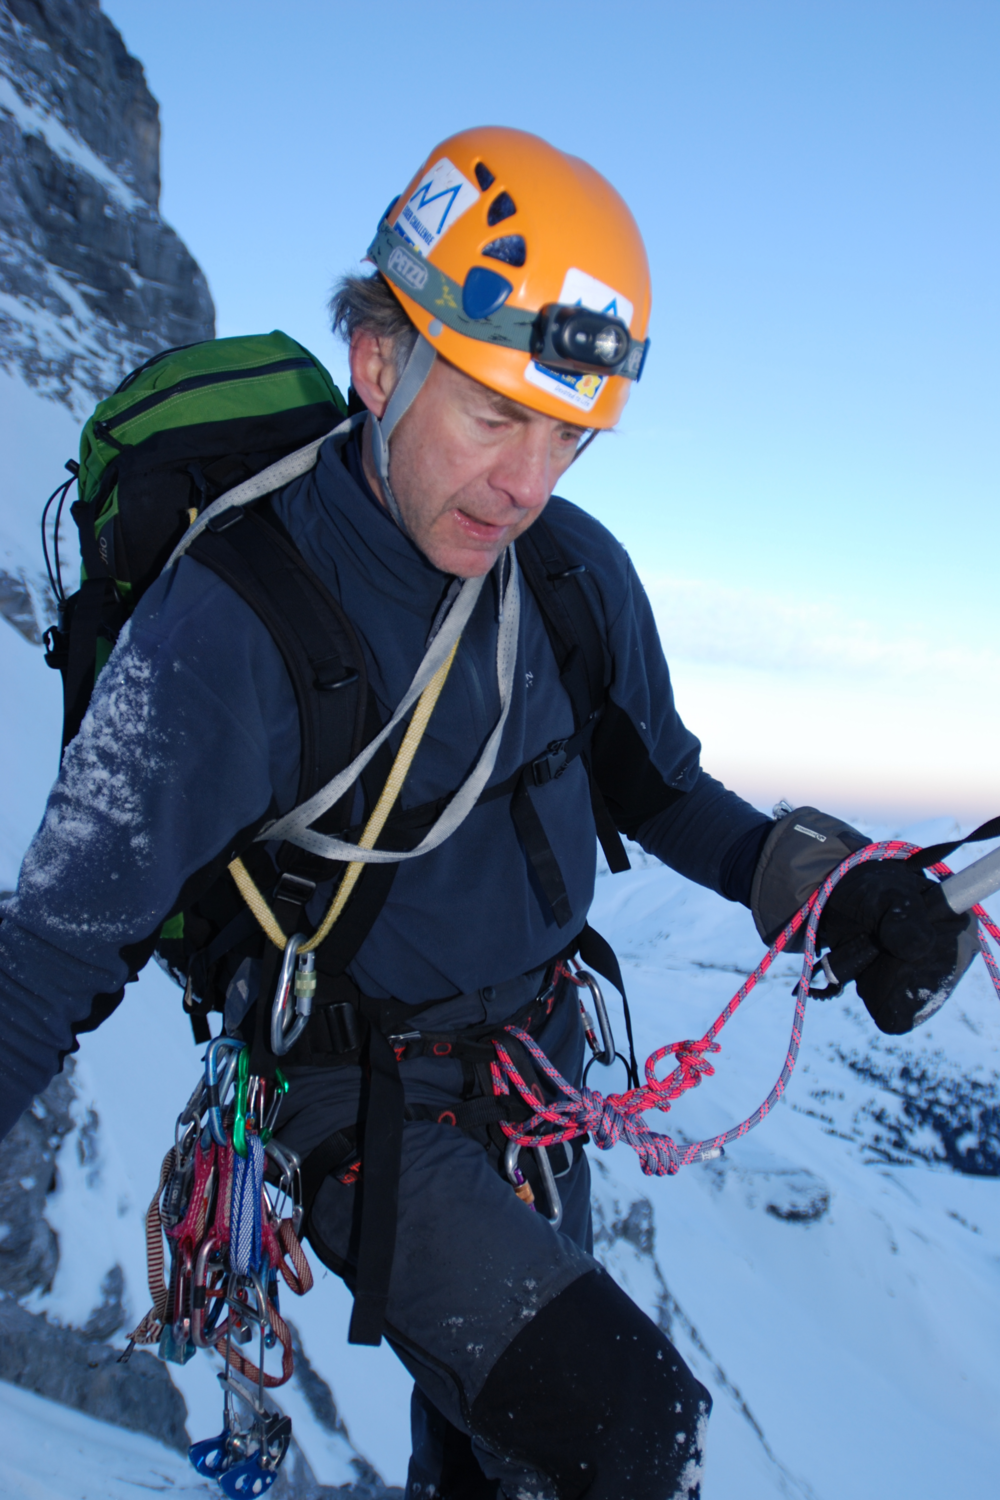 Ran Concentration - Eiger - Credit to Ian Parnell